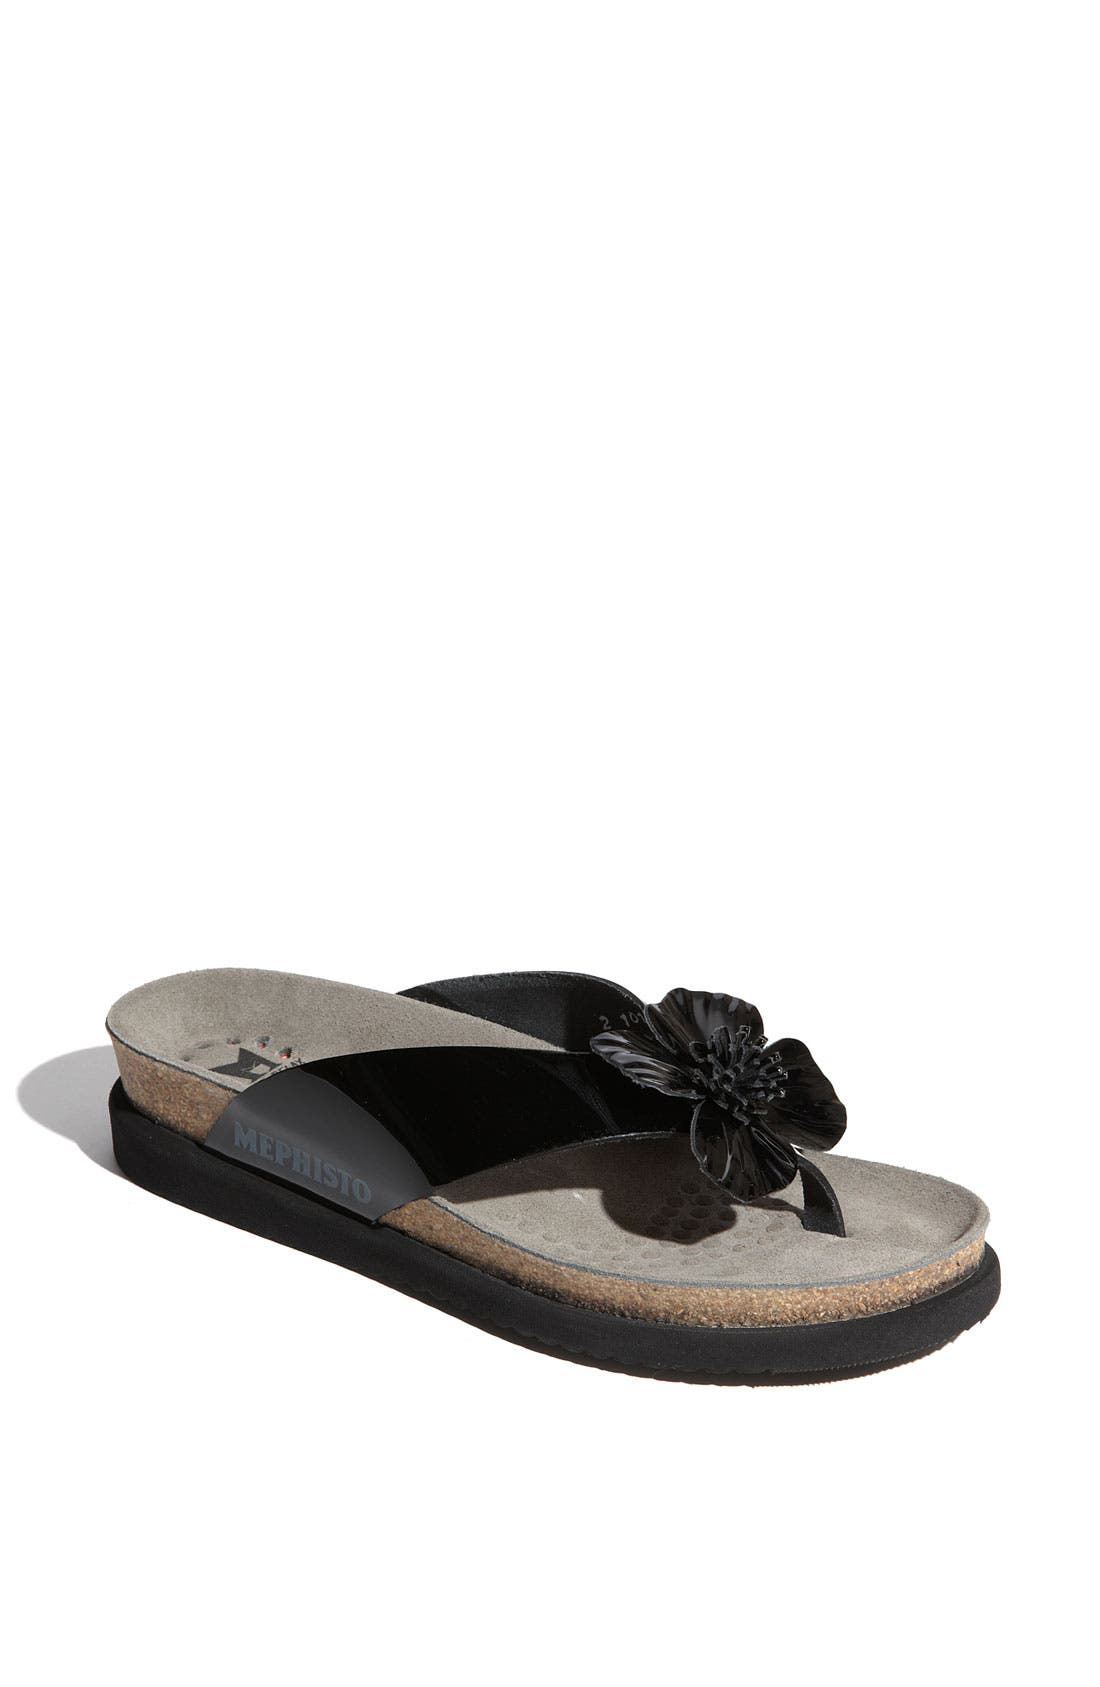 Alternate Image 1 Selected - Mephisto 'Violette' Thong Sandal